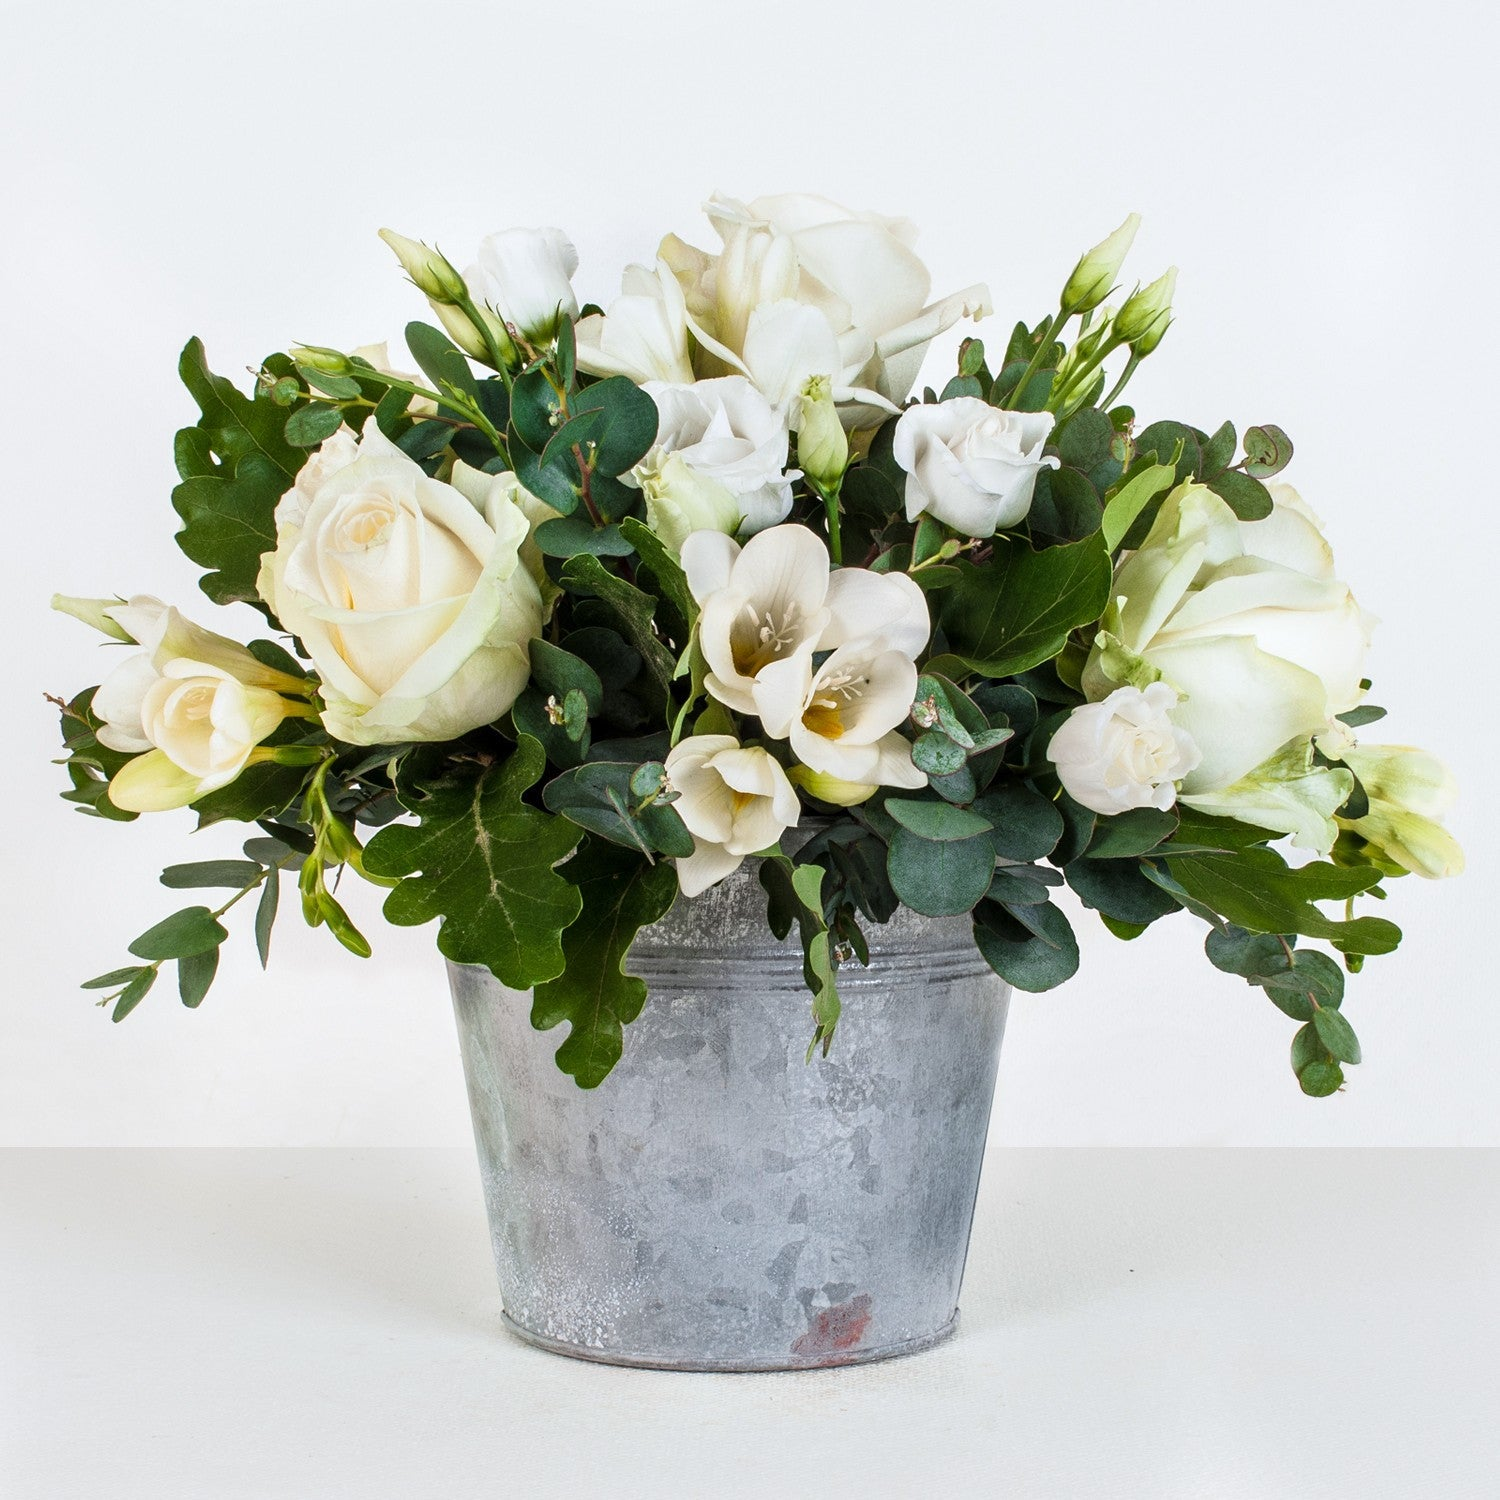 Coro - Cream, Ivory White Zinc Pot Arrangement